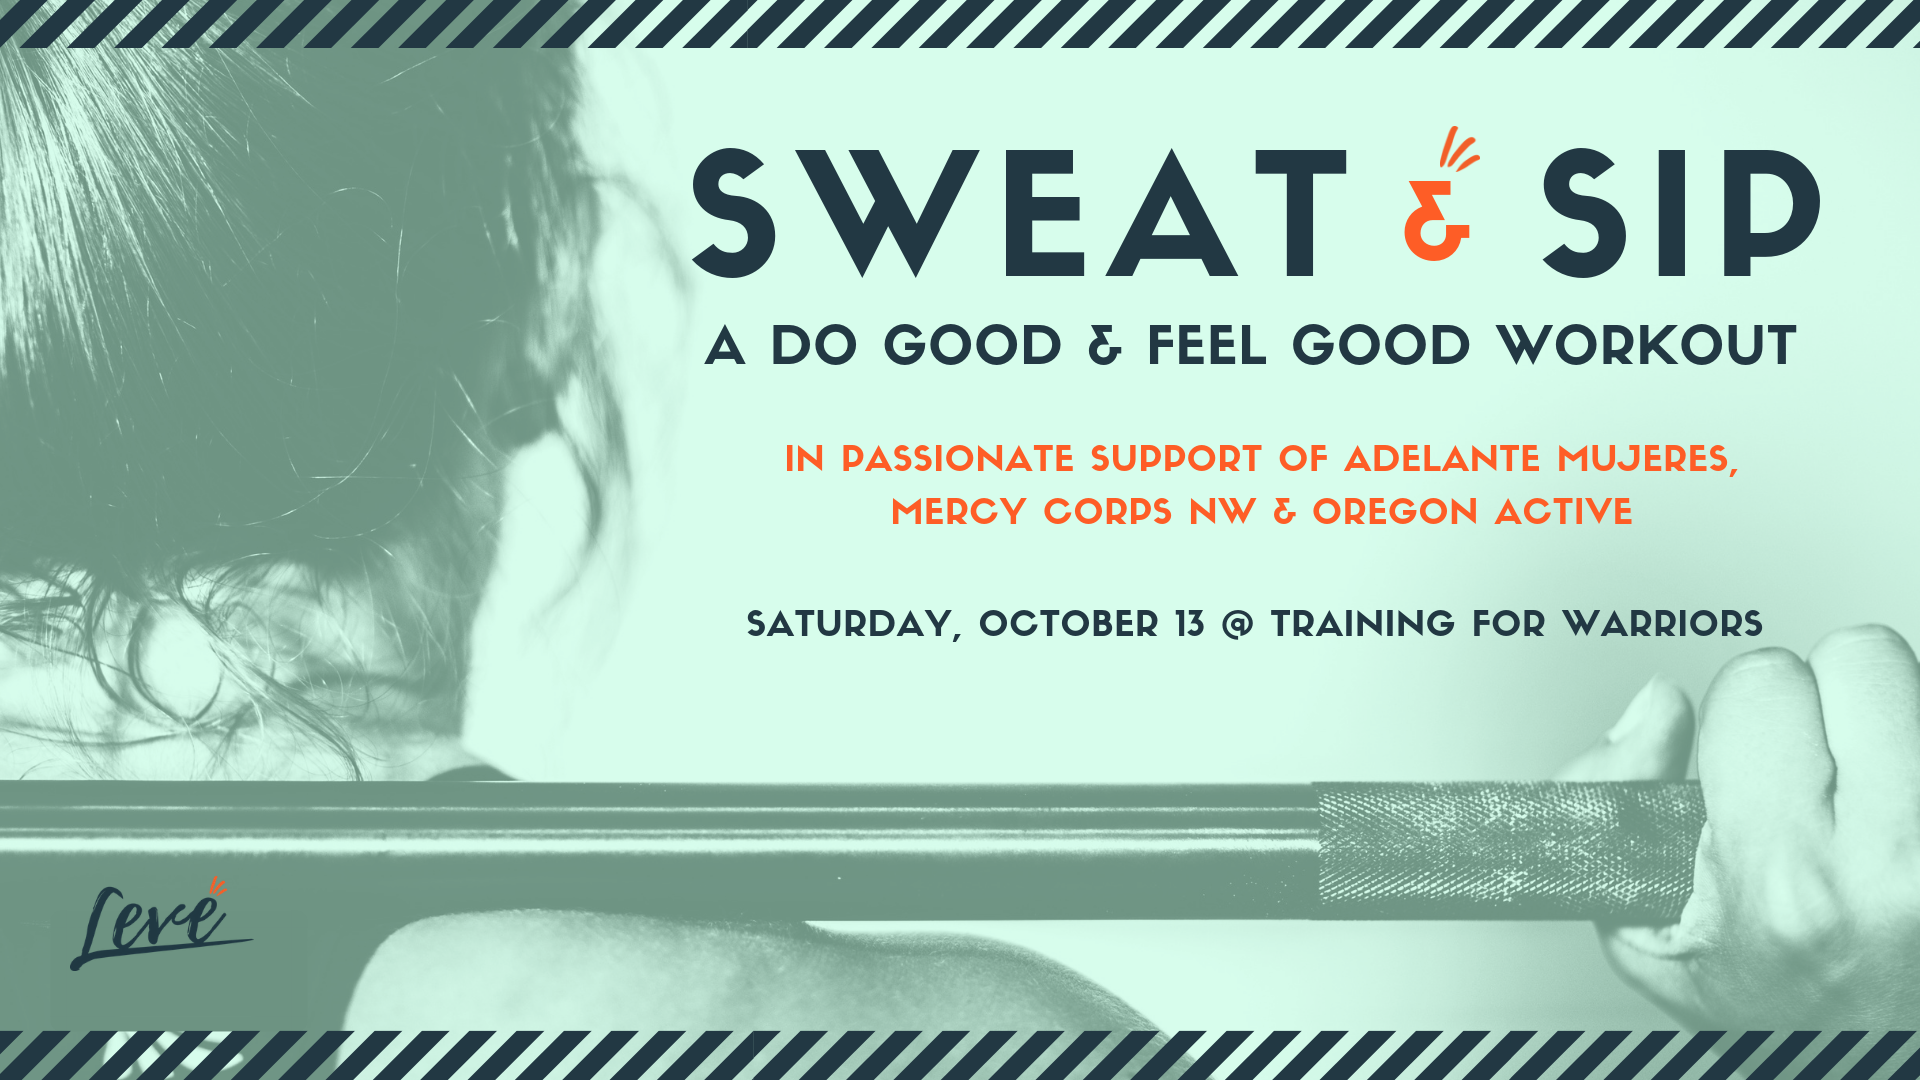 sweat-and-sip-oct13-facebook-event-cover.png